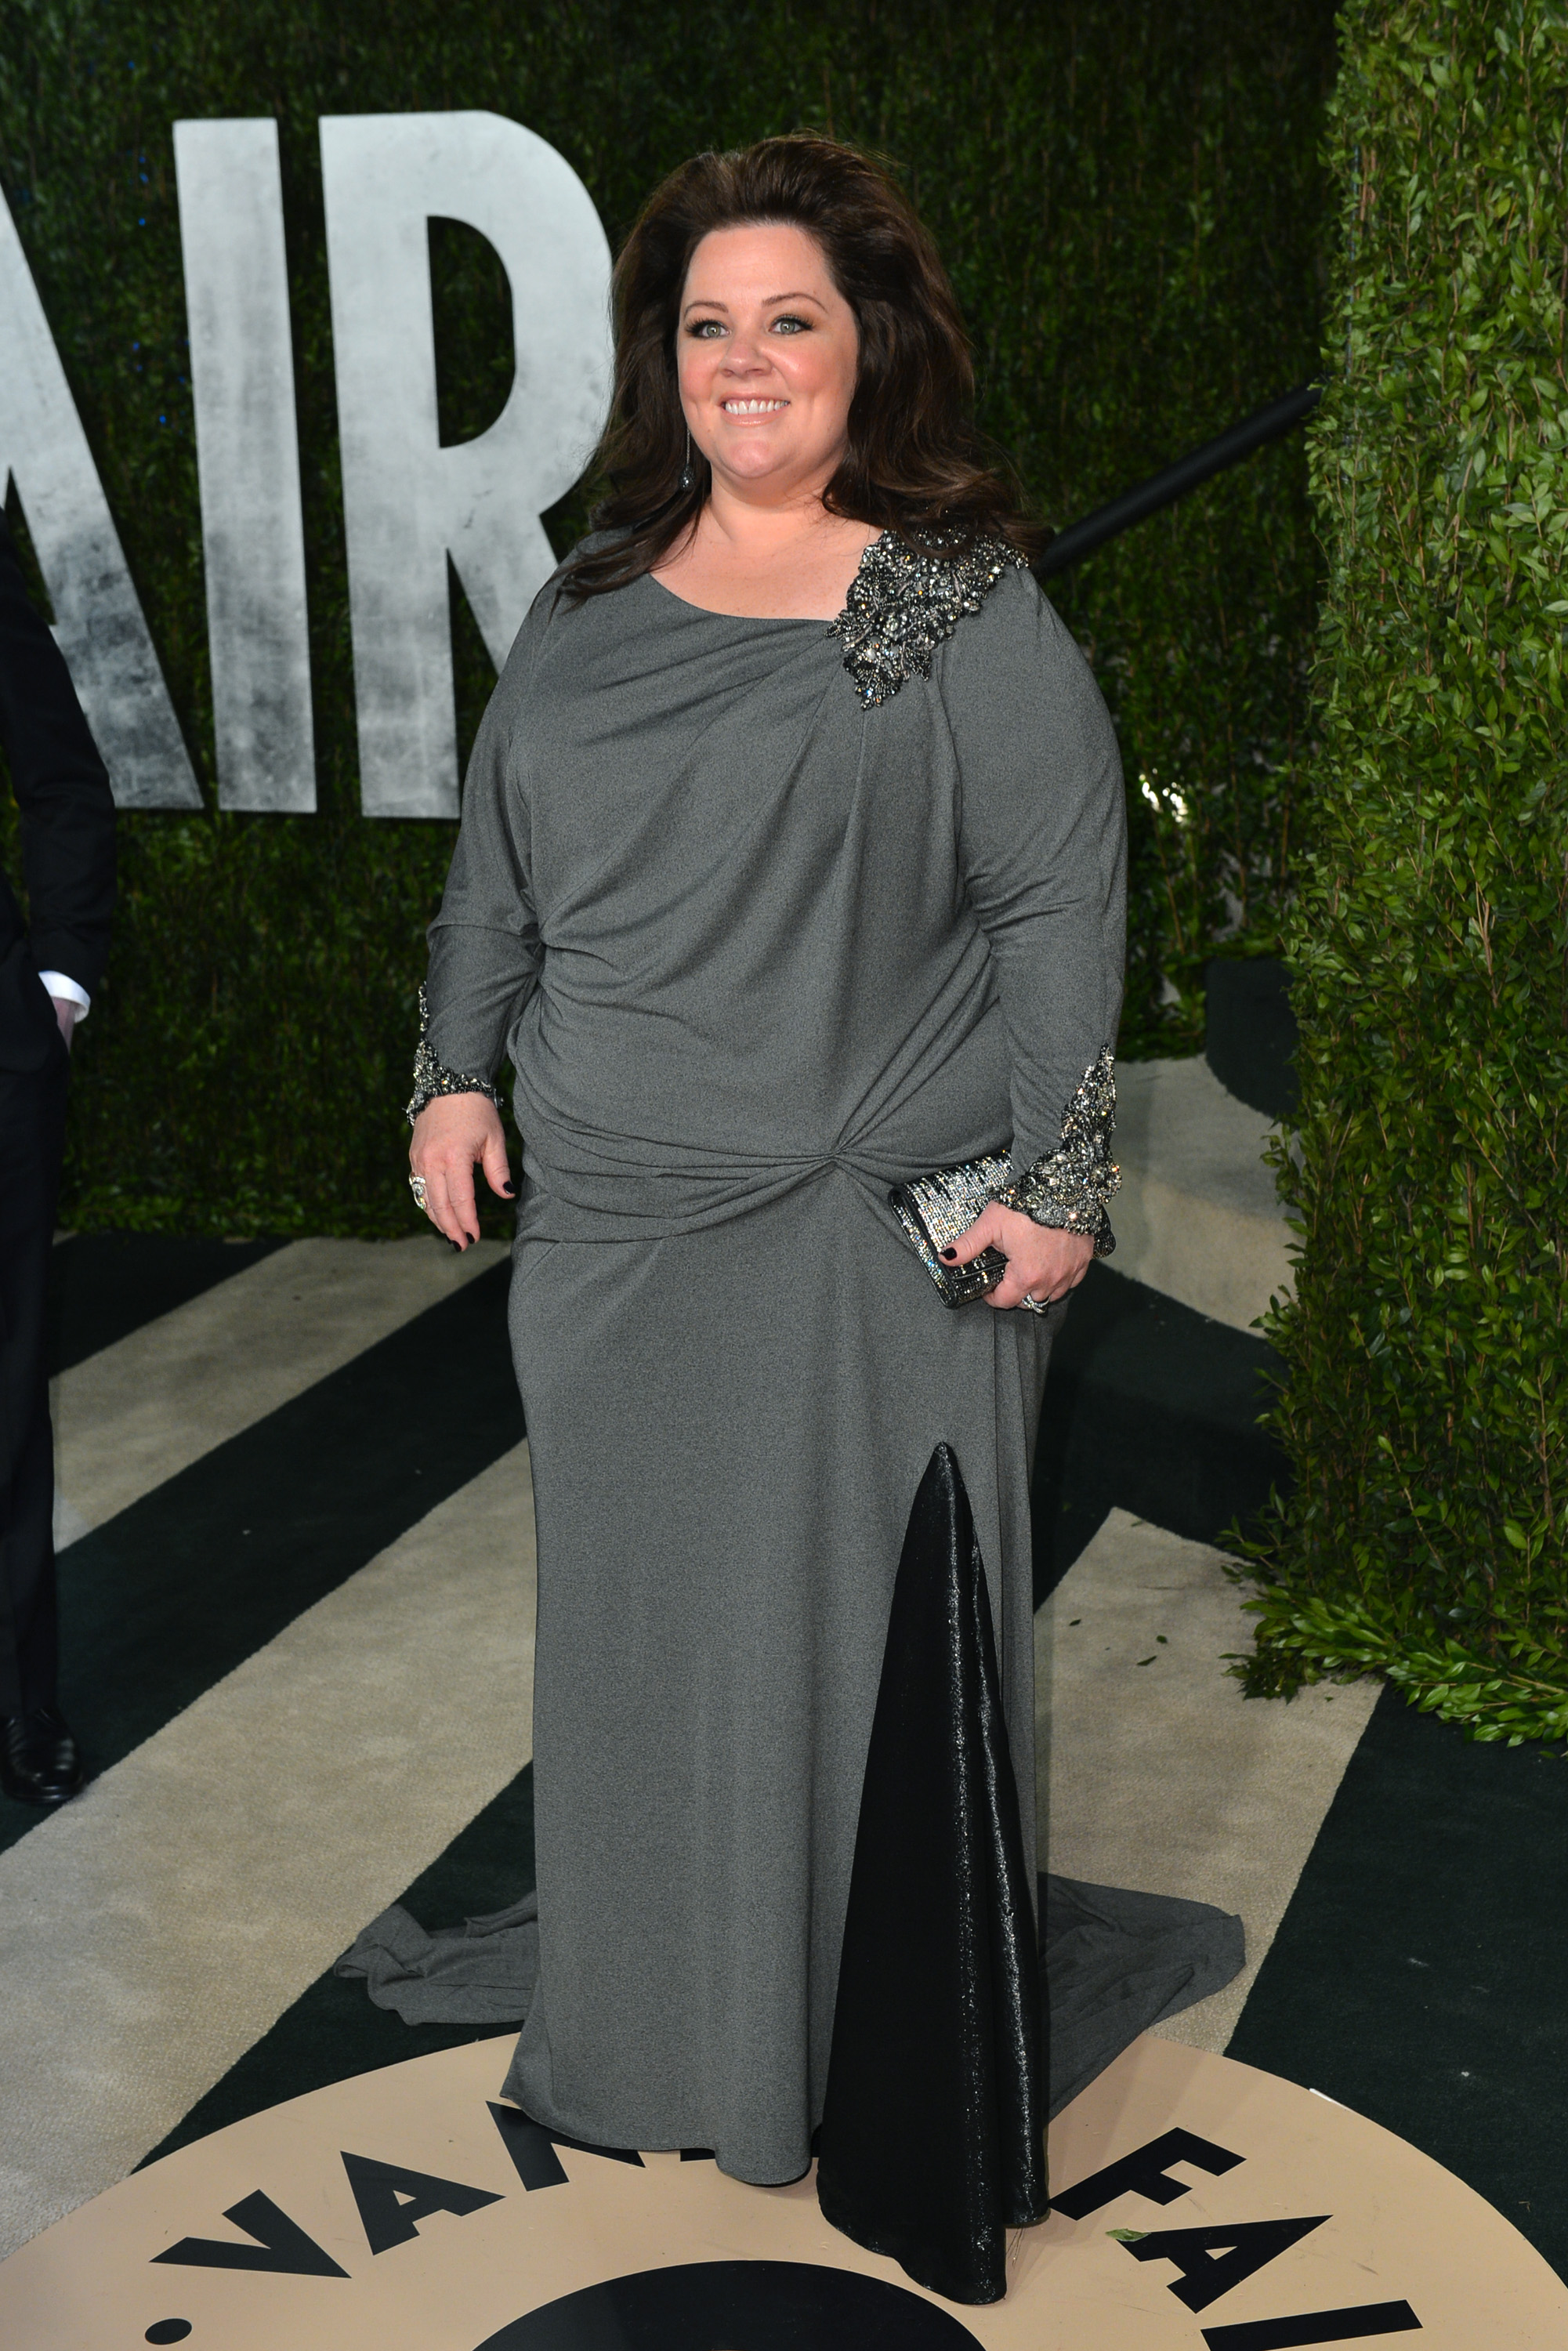 Melissa McCarthy arrived at the Vanity Fair Oscar party on Sunday night.